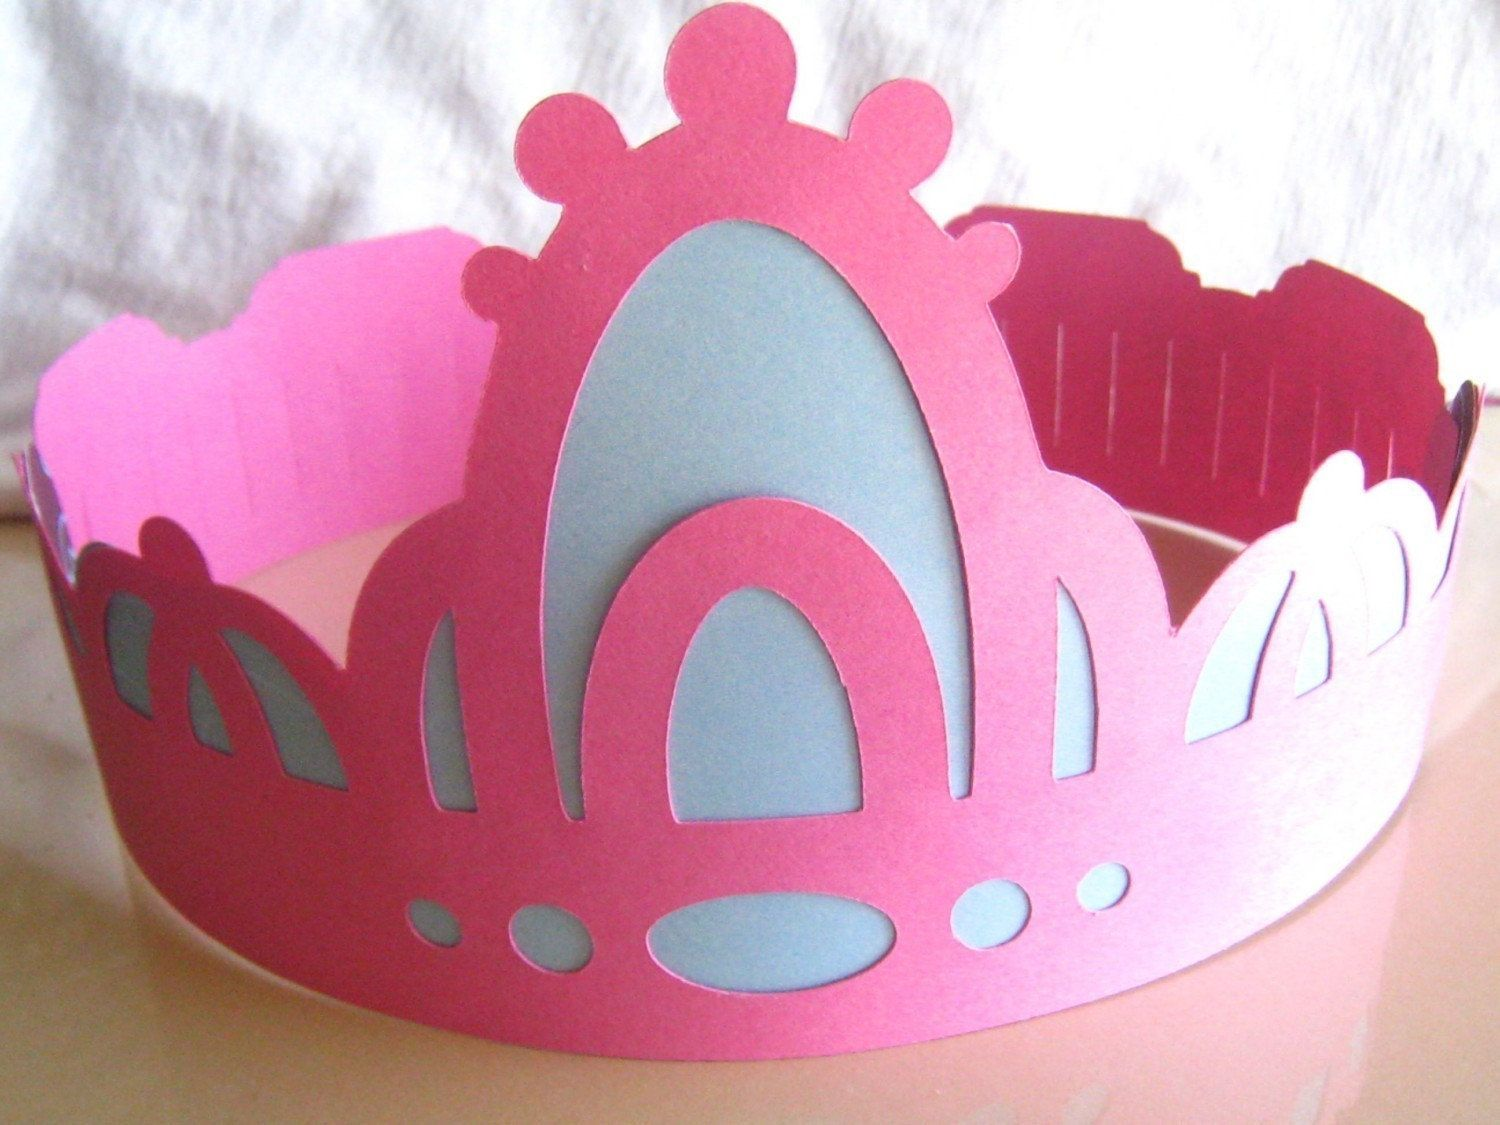 1000+ images about Paper Crowns on Pinterest | Vintage inspired ...